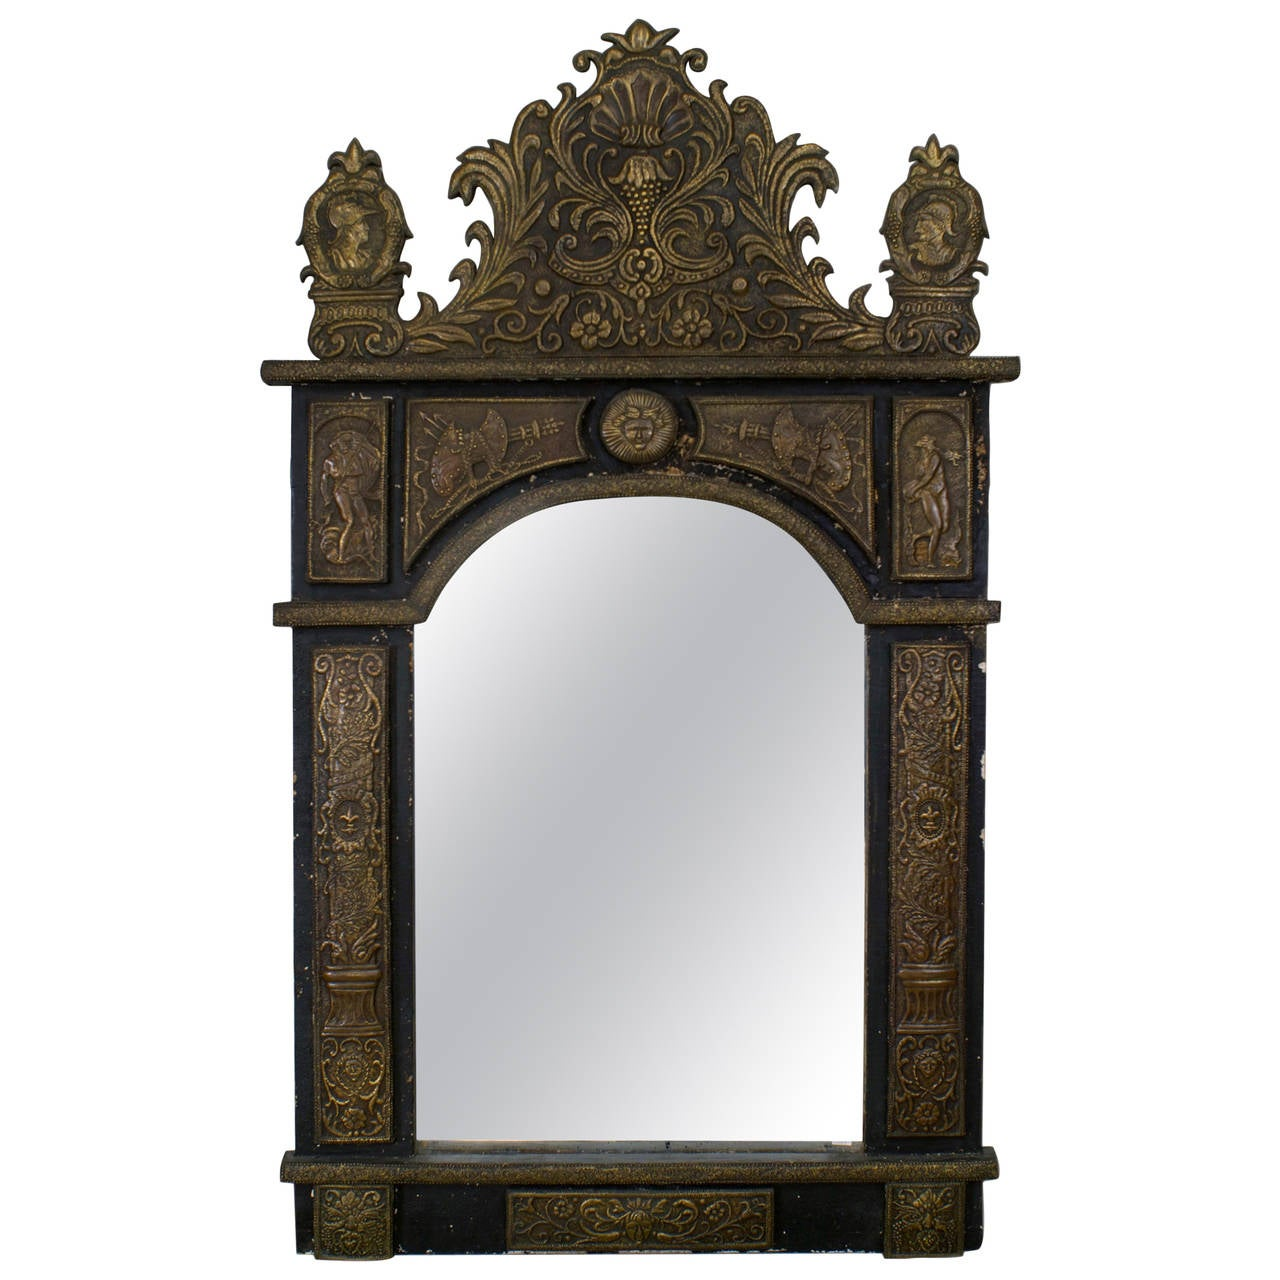 French wall mirror decorated with figural repousse for for Mirrors for sale